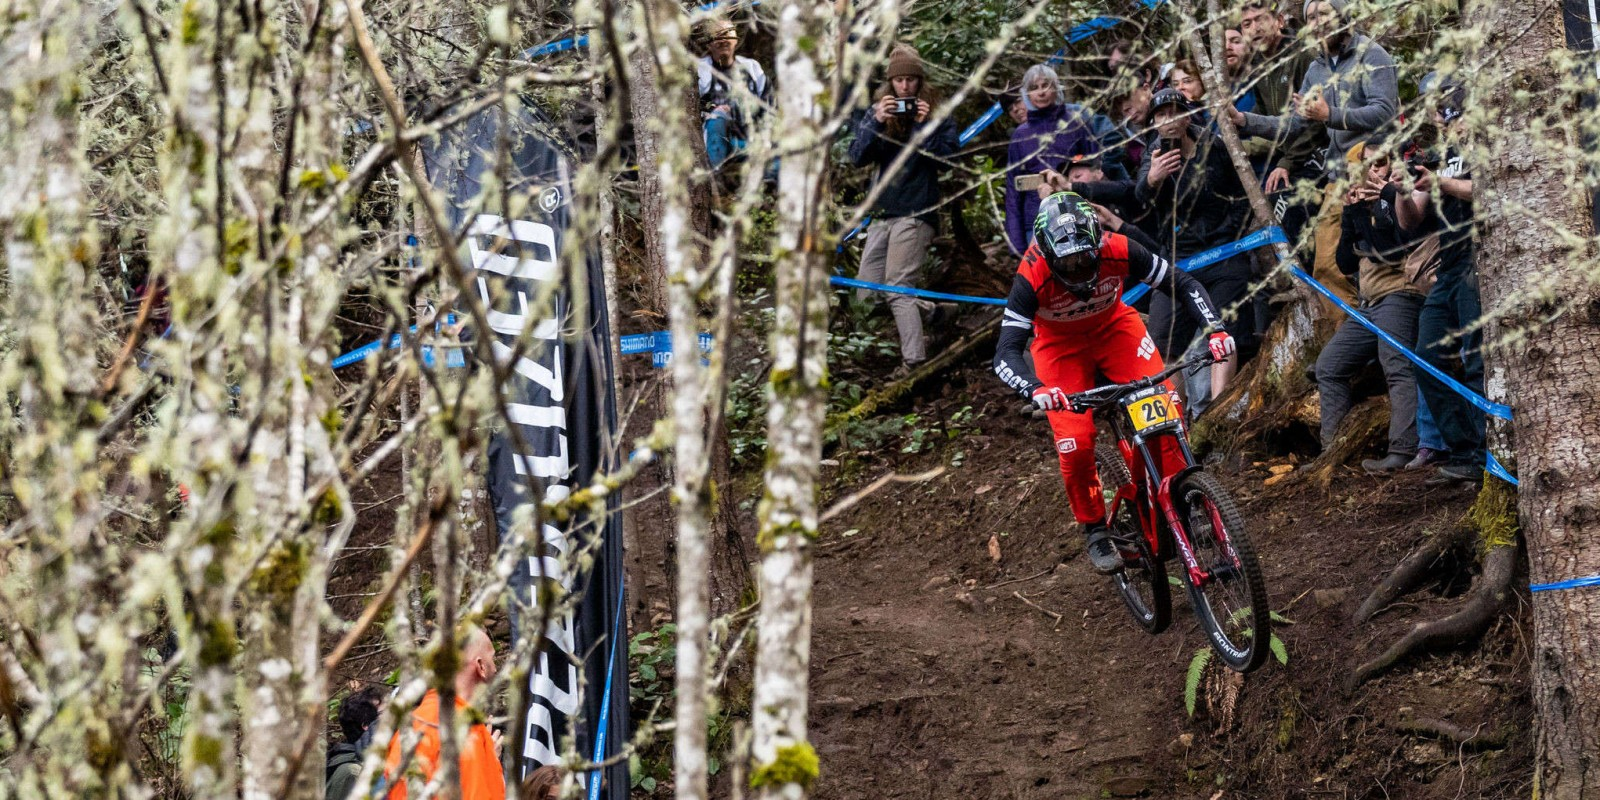 Monster Energy's Charlie Harrison (USA) has taken him the win at the first US national GRT race of the season against a stacked field.  The young Californian took home the win on a track that was about as far as he could get from the conditions he is used